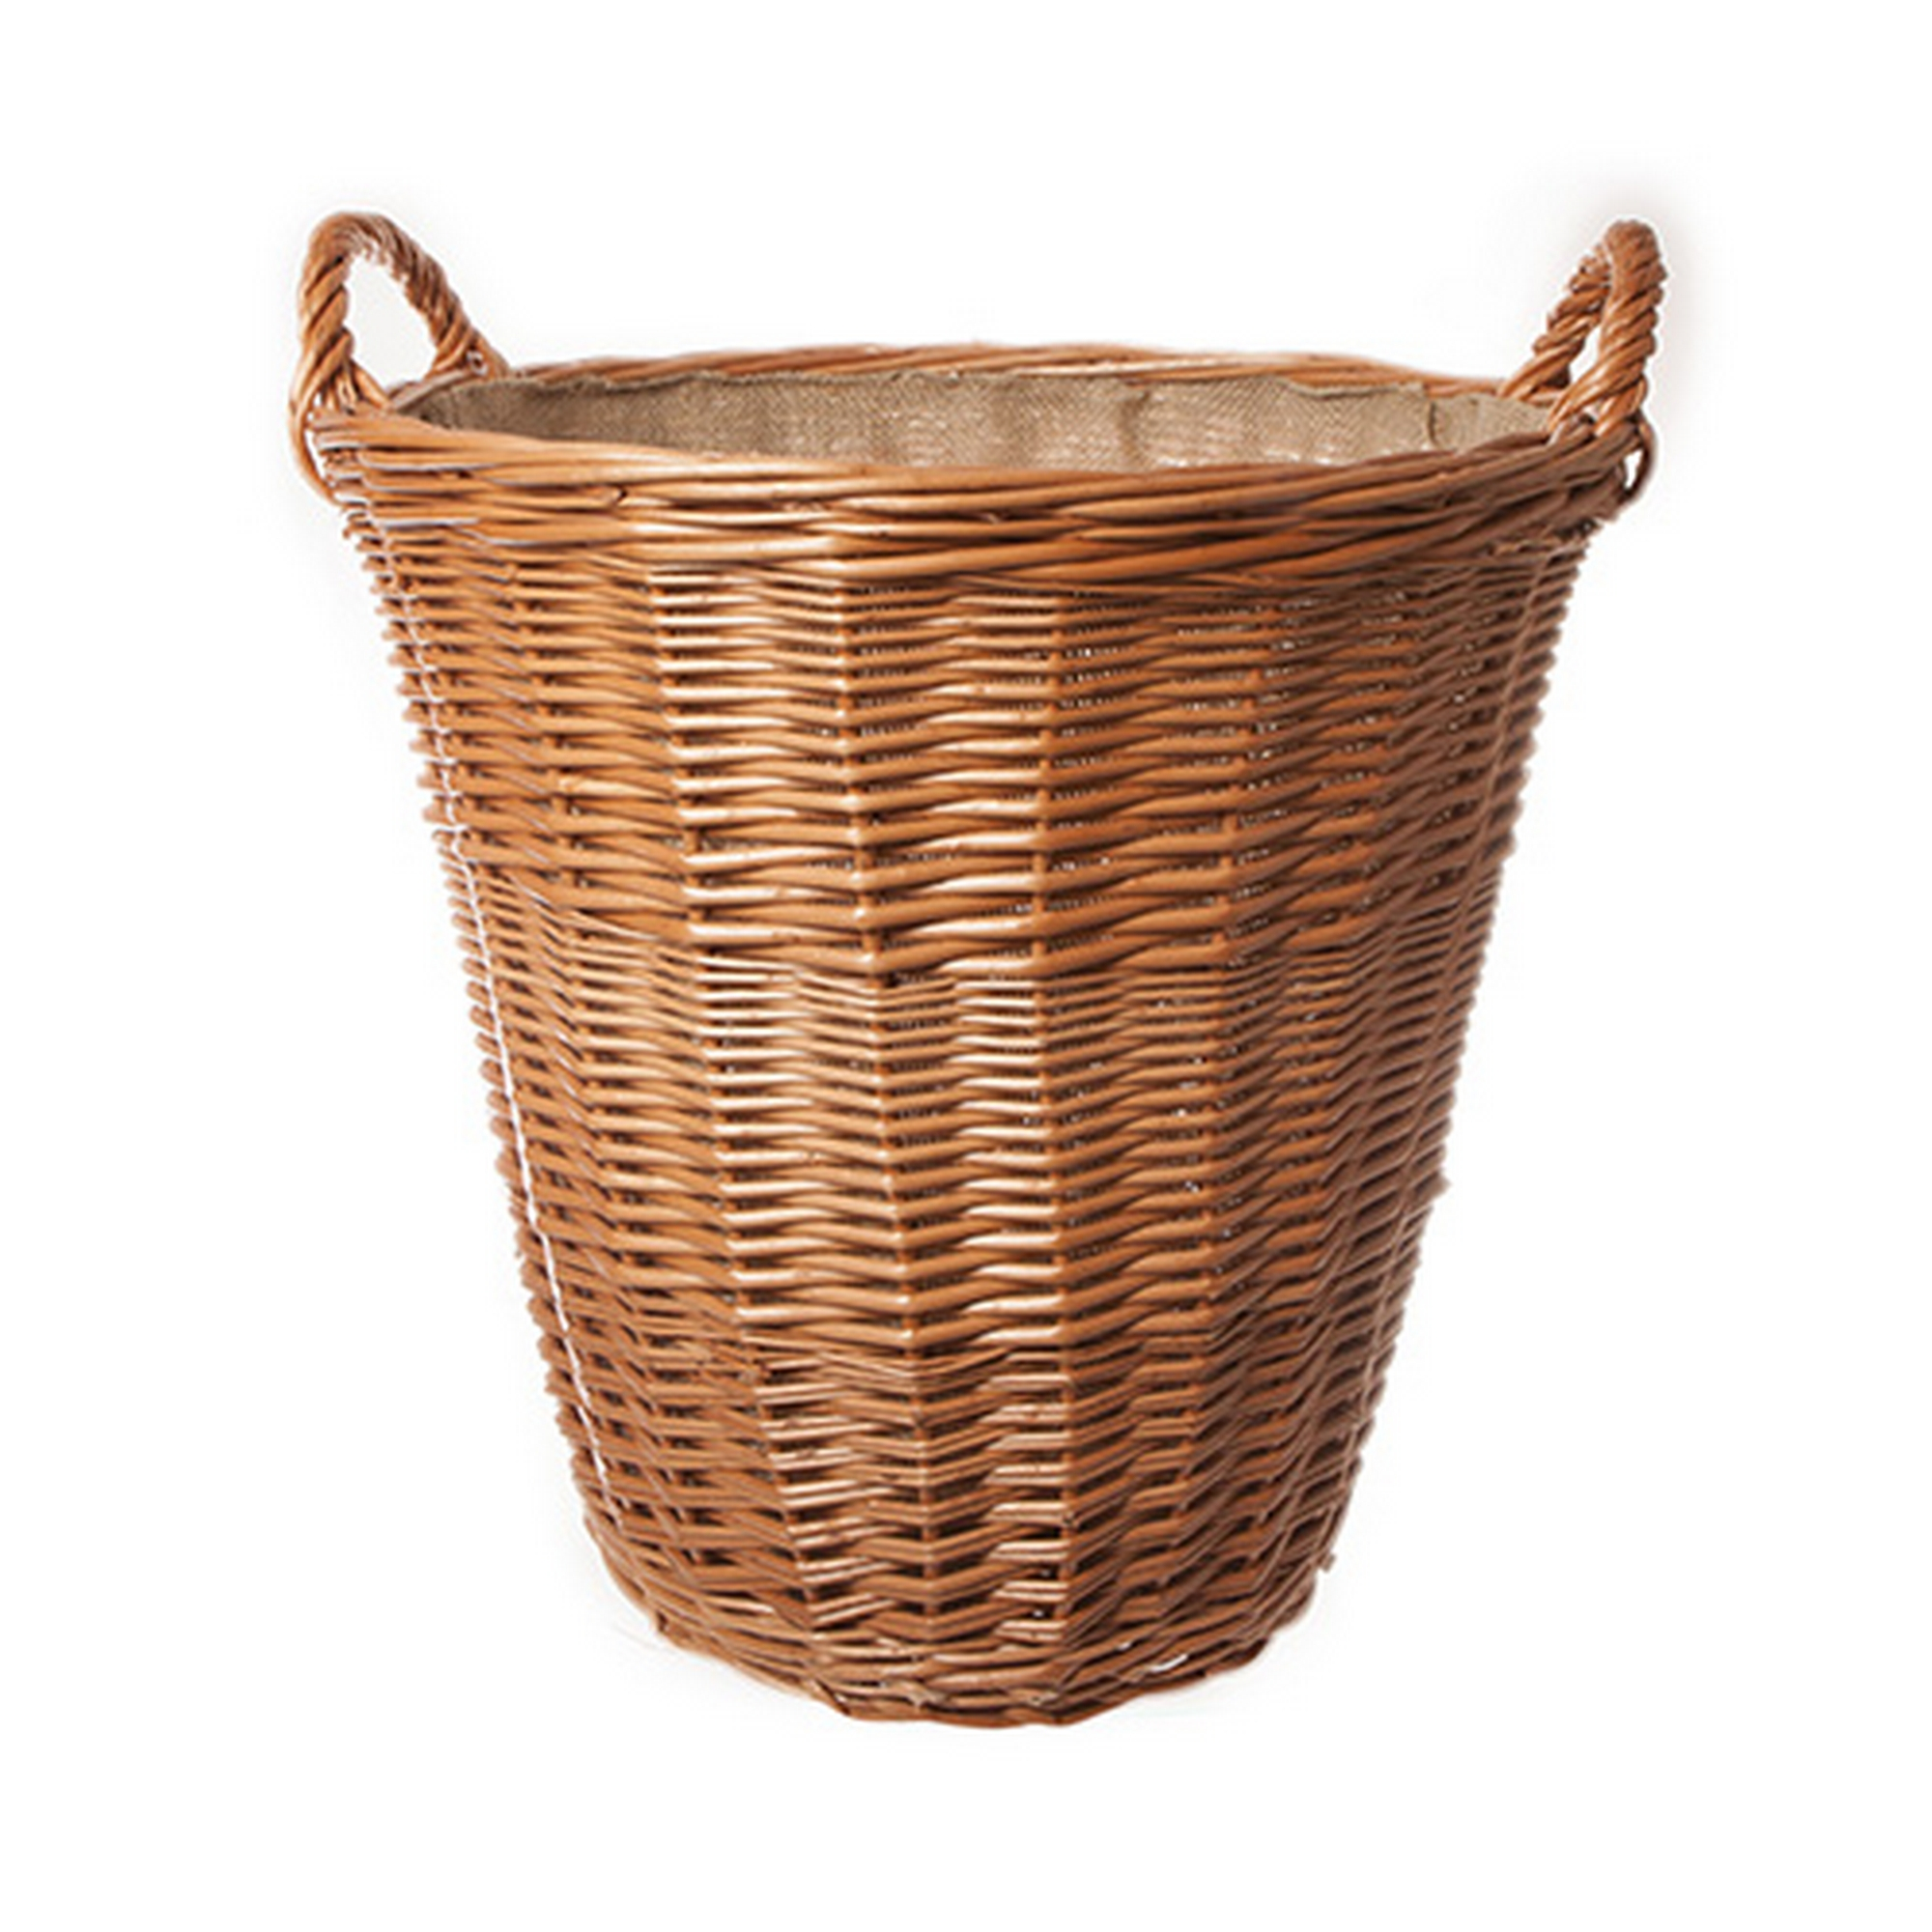 Round Wicker Baskets With Handles : Large quality round lined wicker log basket with handles